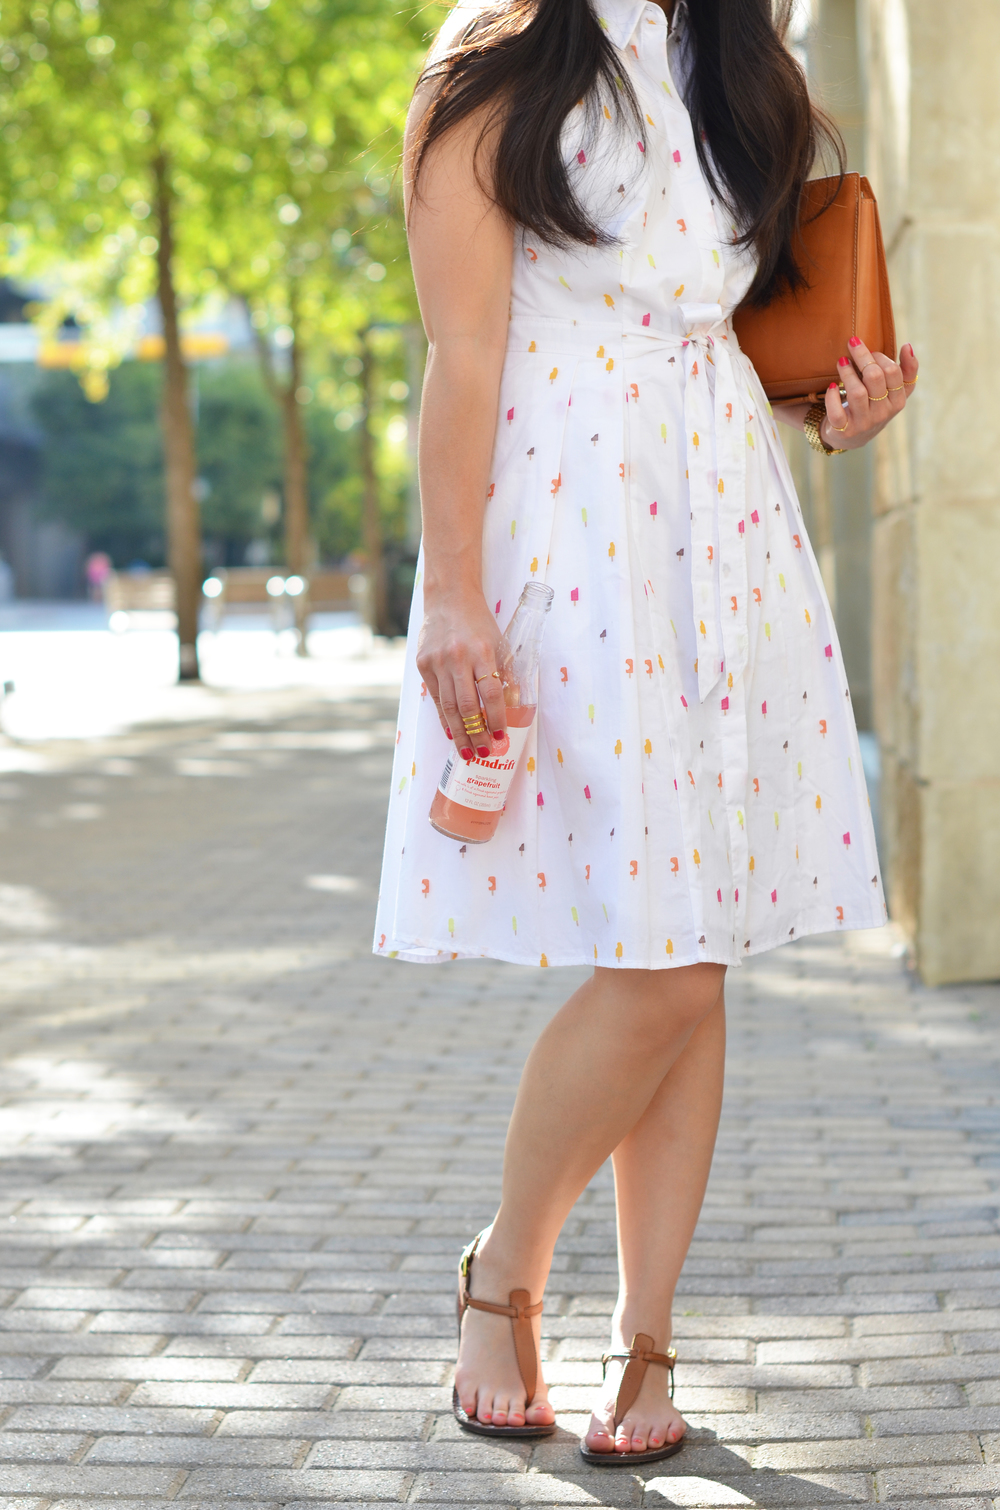 the popsicle shirtdress -- jannadoan.com